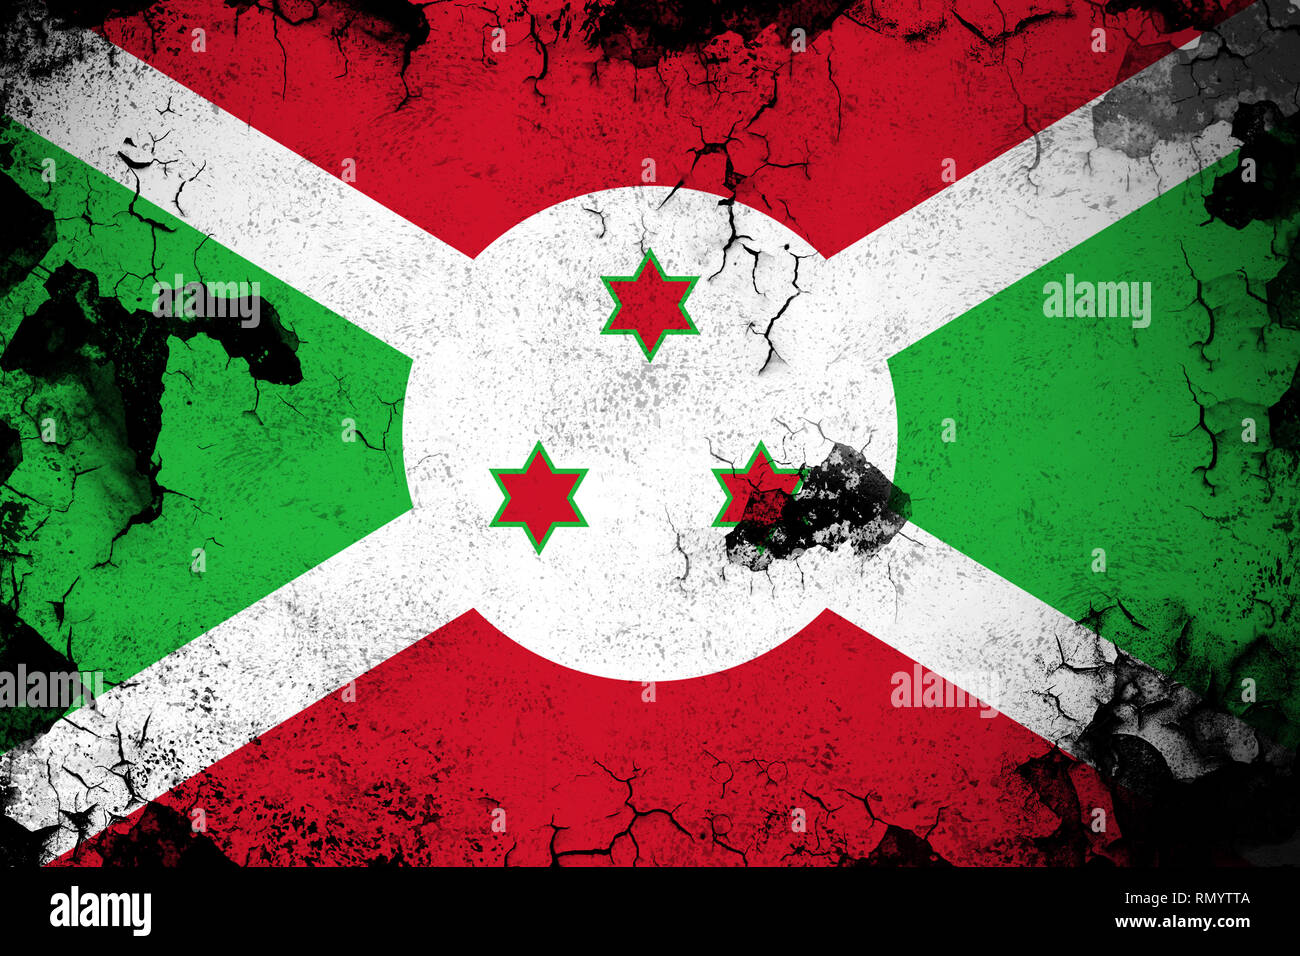 Burundi grunge and dirty flag illustration. Perfect for background or texture purposes. Stock Photo